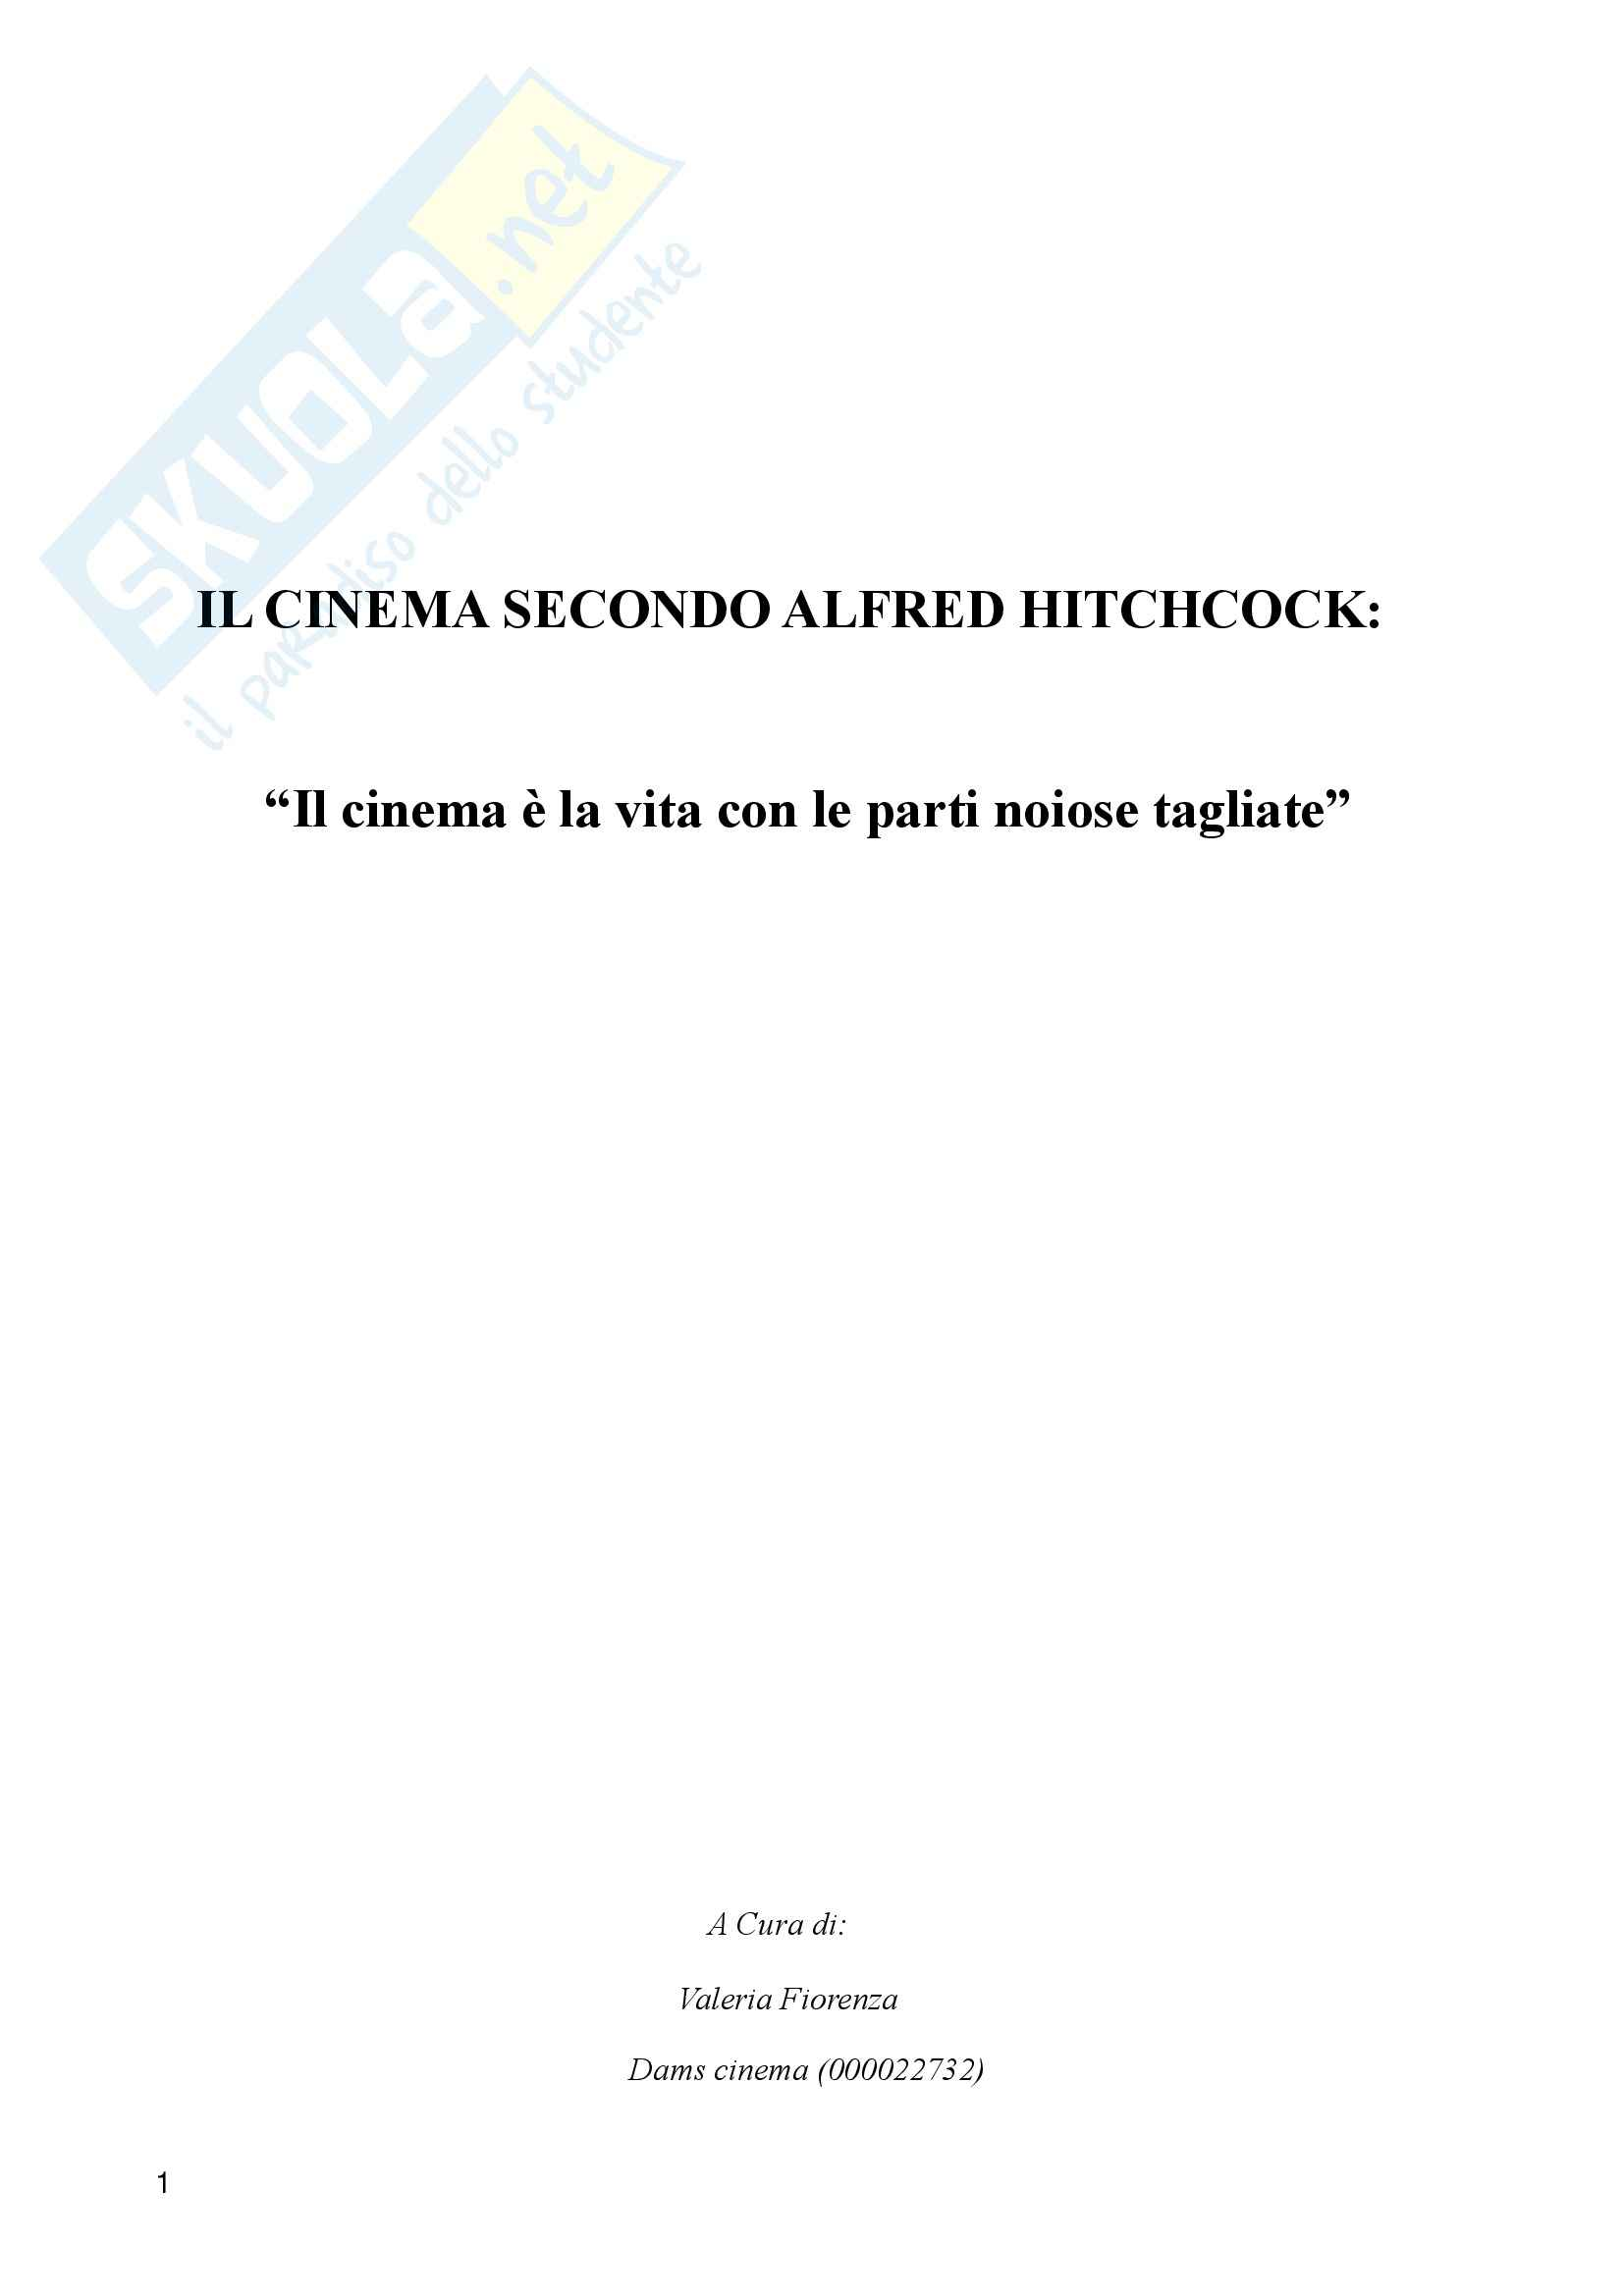 Cinema secondo Alfred Hitchcock, Teoria cinema